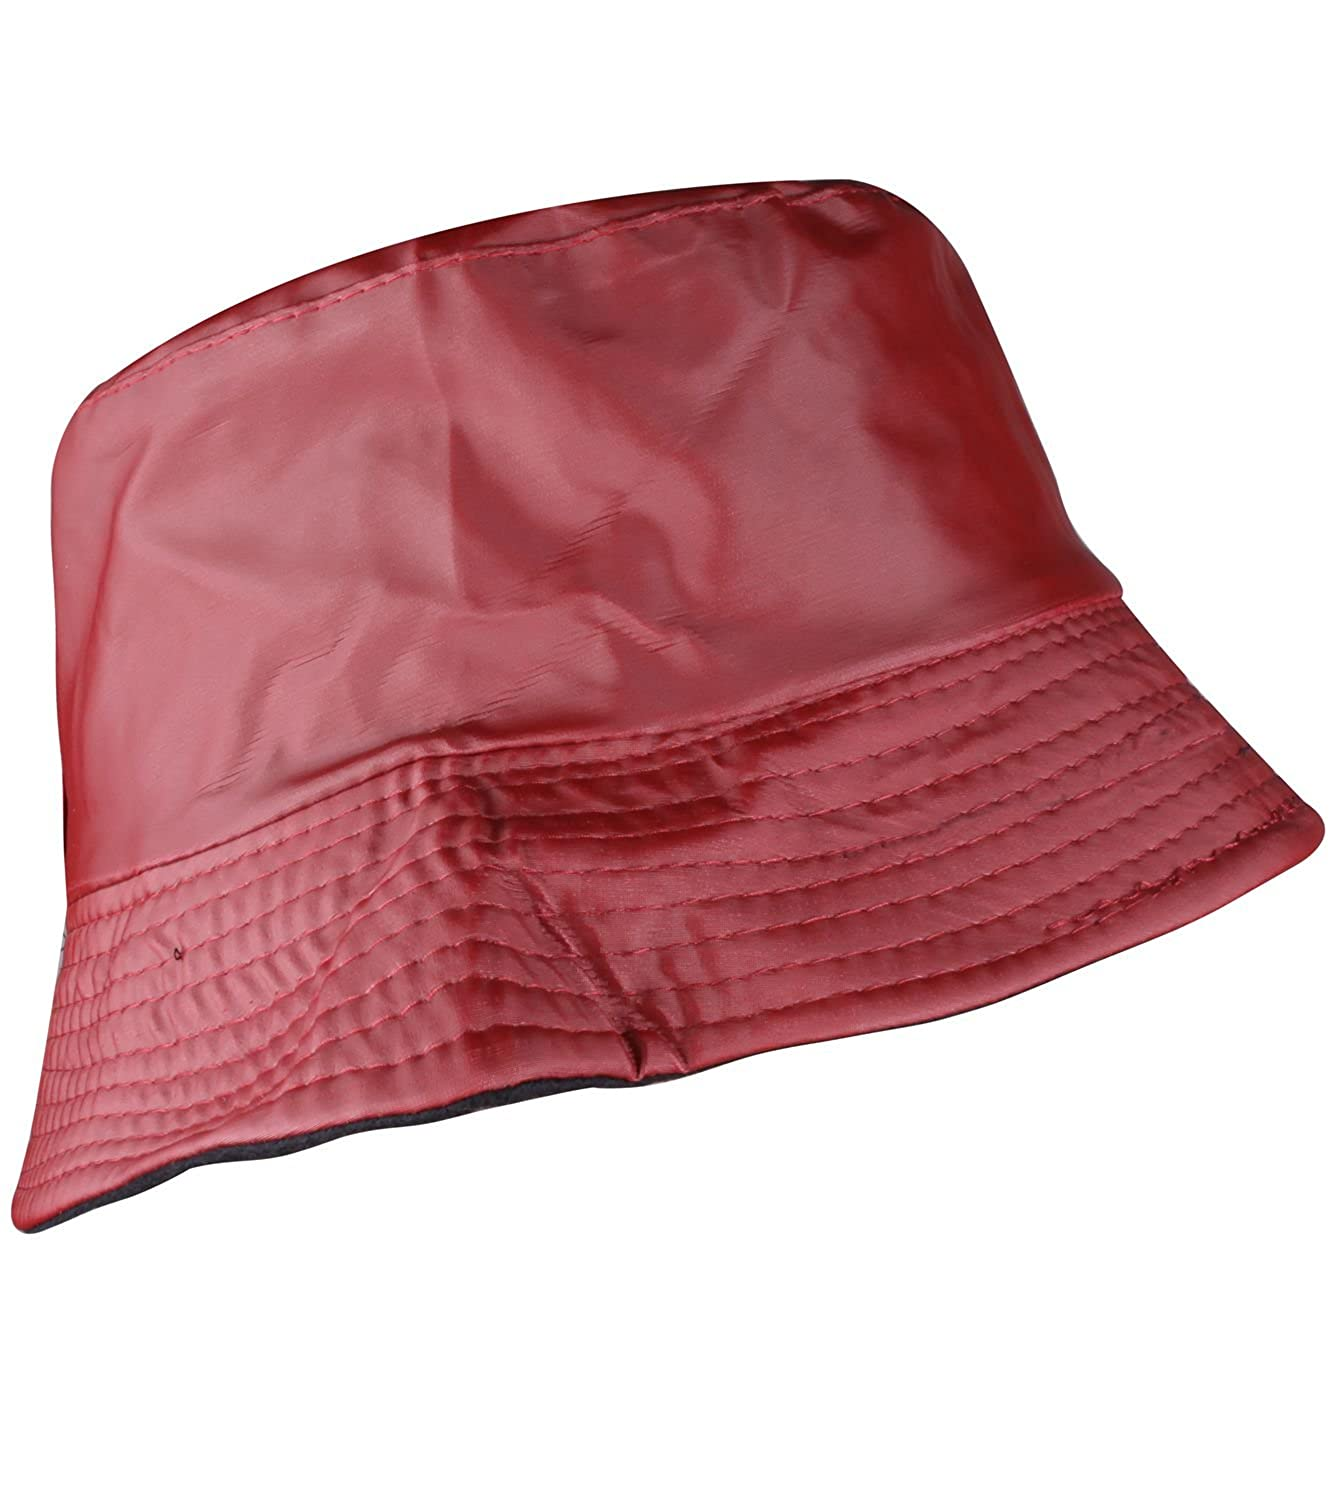 YJDS Womens Rain Hats Waterproof Wide Brim Packable